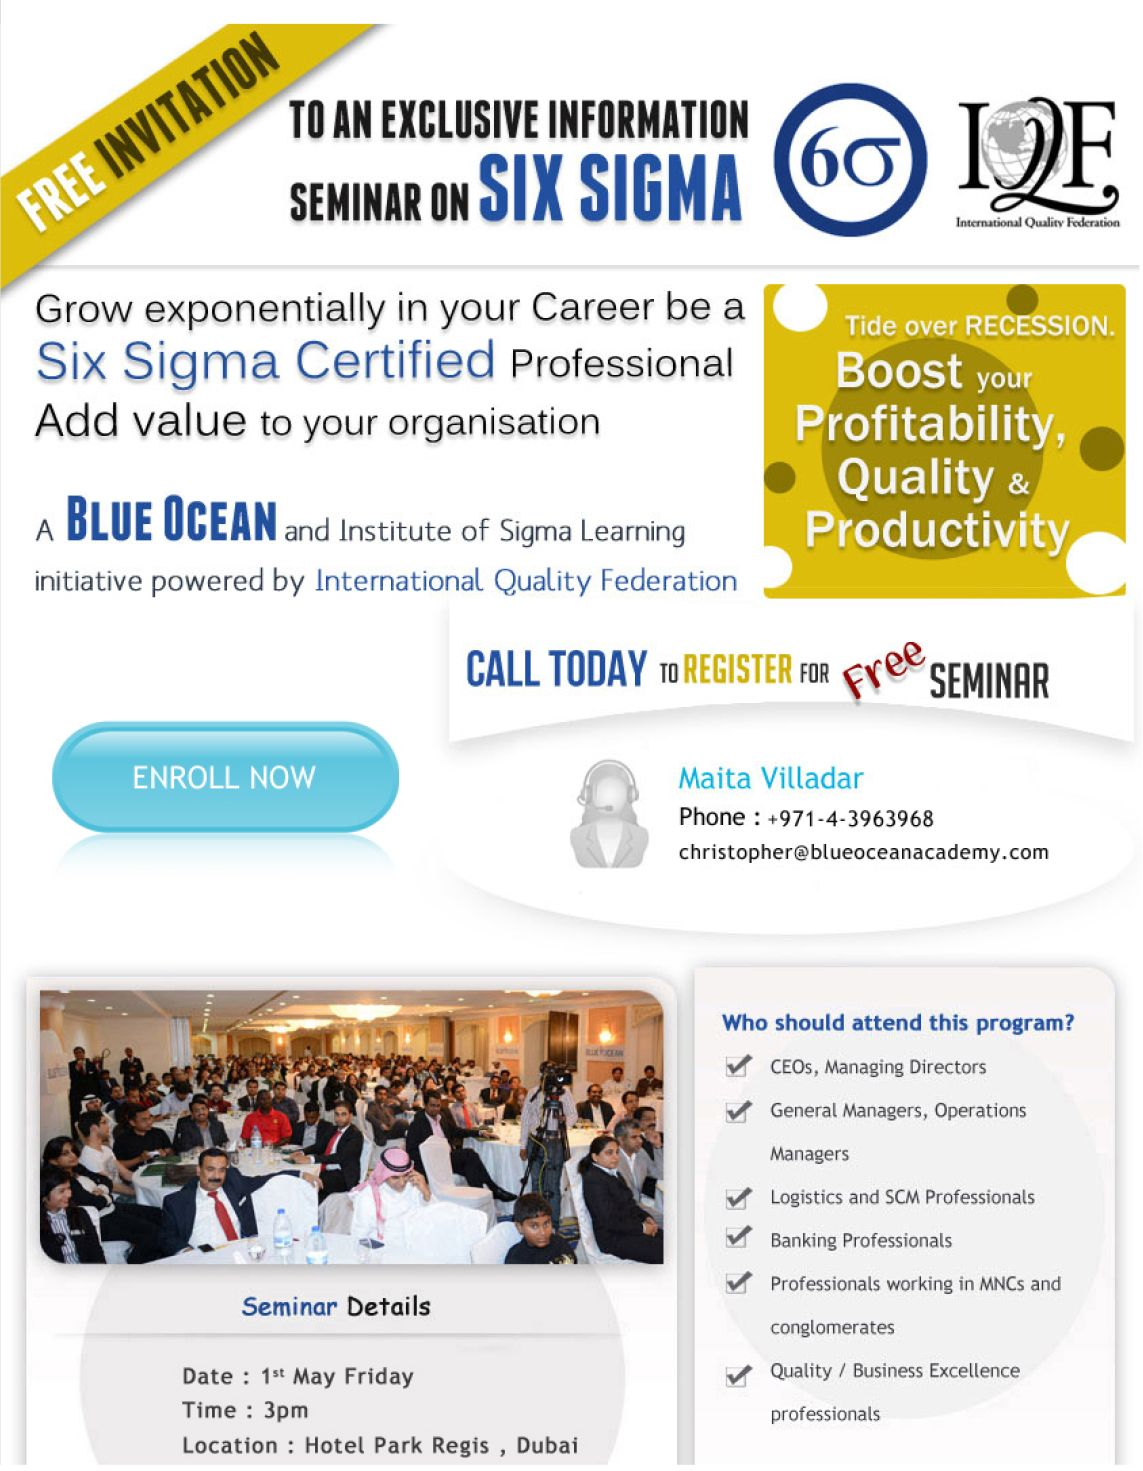 Free Six Sigma Seminar by Blue Ocean Academy: Blue Ocean, one of the pioneers of Six Sigma training in the Middle East offers Green and Black Belt certification from the prestigious US-based International Quality Federation (IQF). The five-day training is held in Dubai and conducted by industry experts.